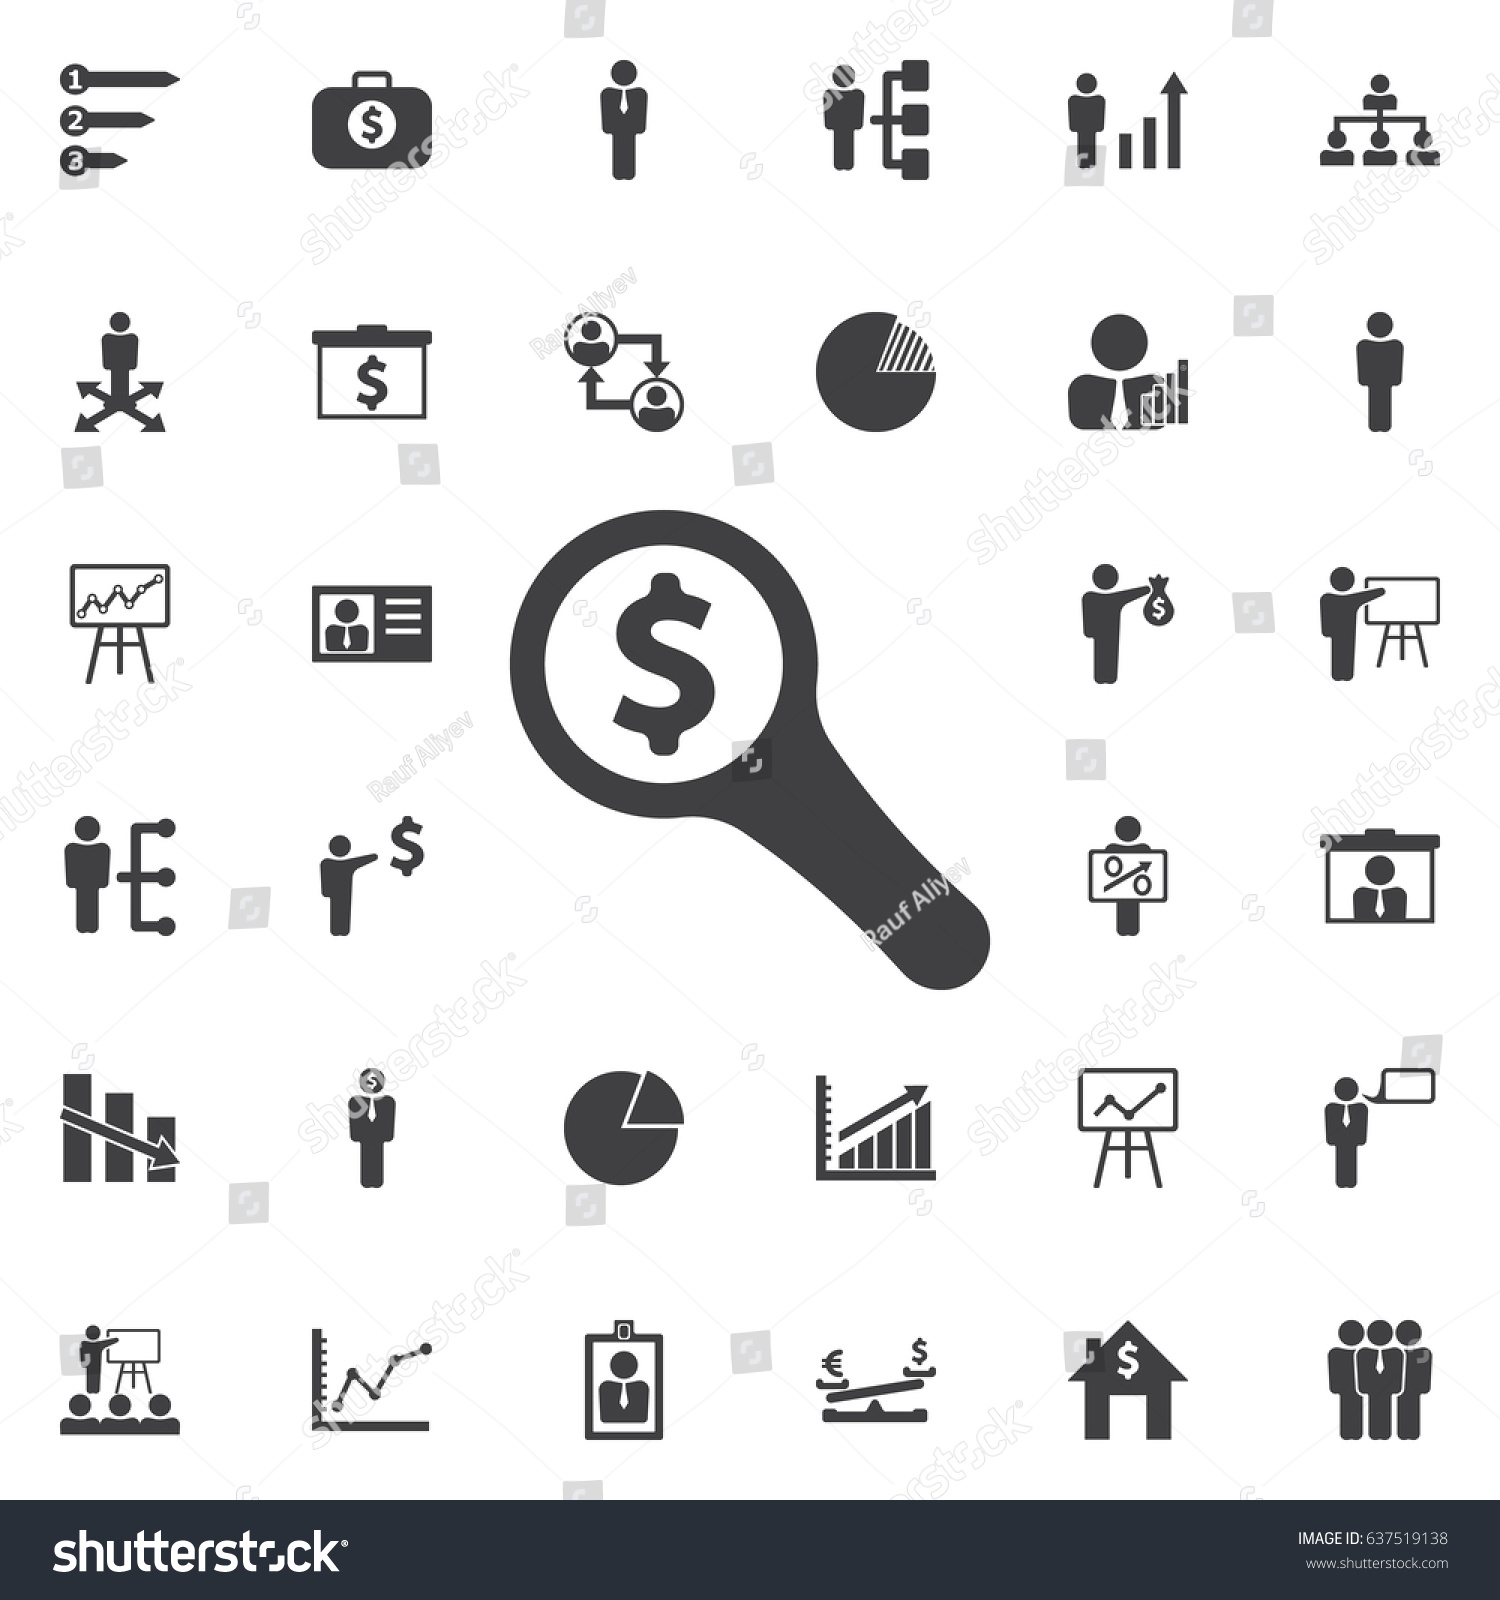 Looking money icon business icons set stock vector 637519138 looking for money icon business icons set biocorpaavc Choice Image